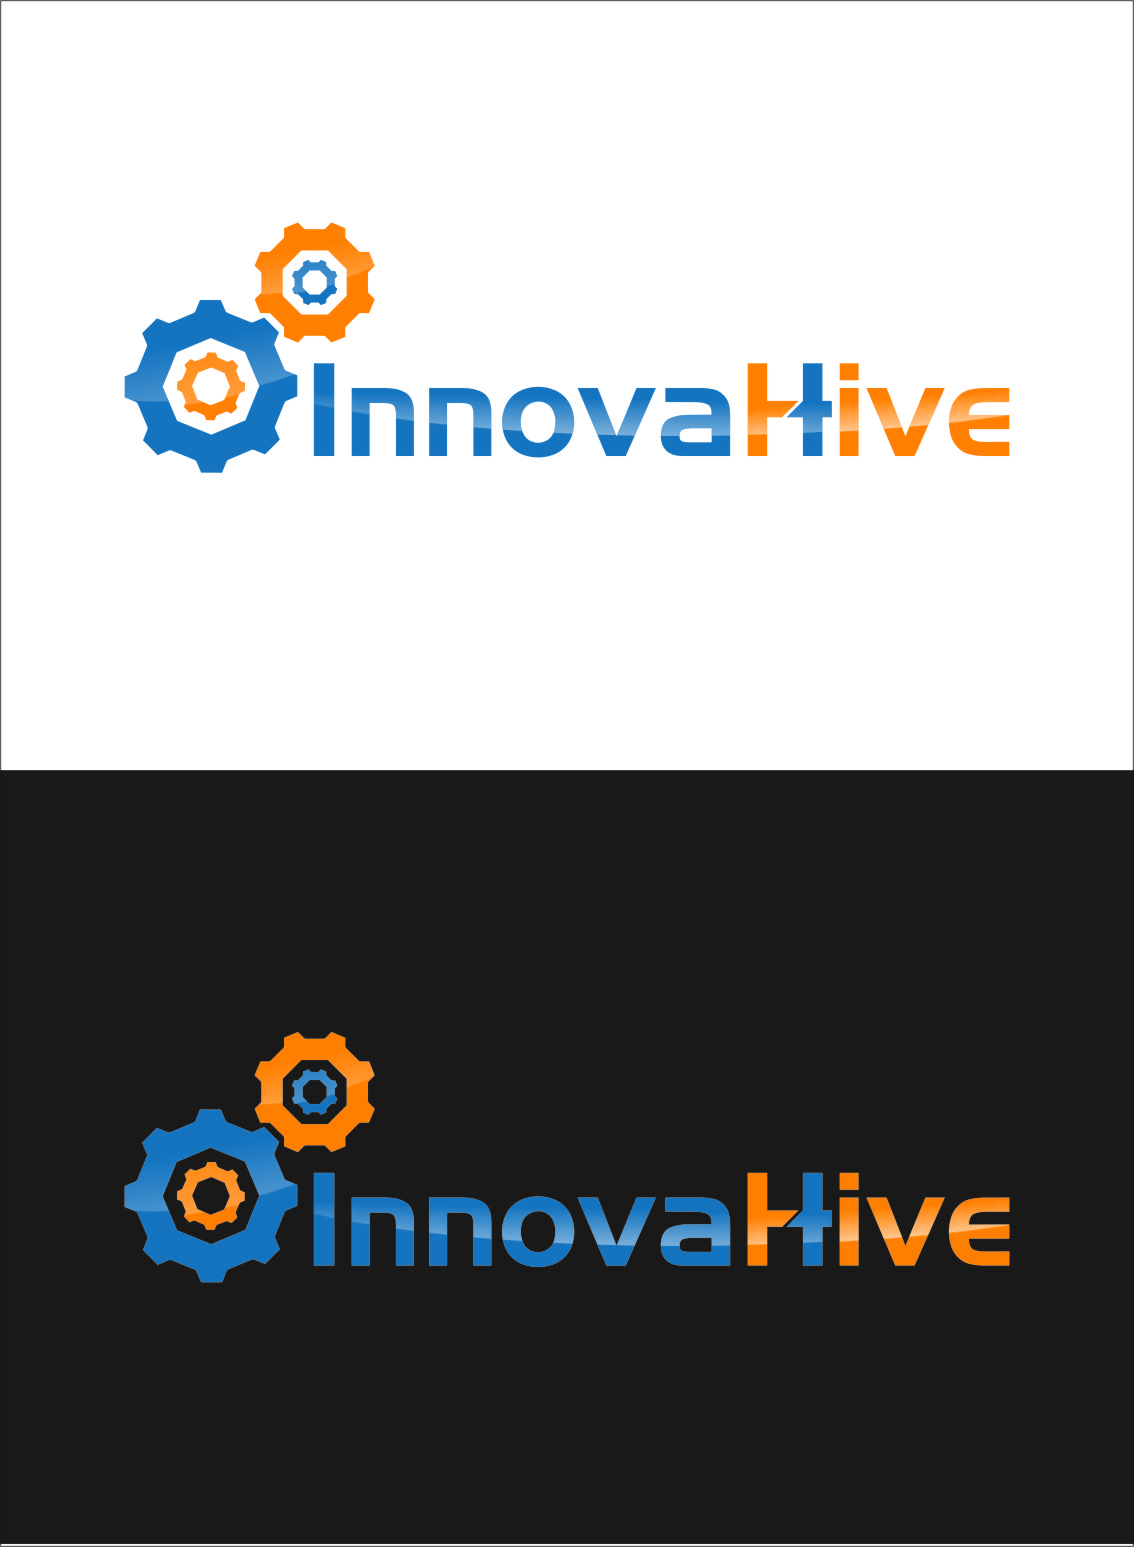 Logo Design by Ngepet_art - Entry No. 150 in the Logo Design Contest InnovaHive Logo Design.